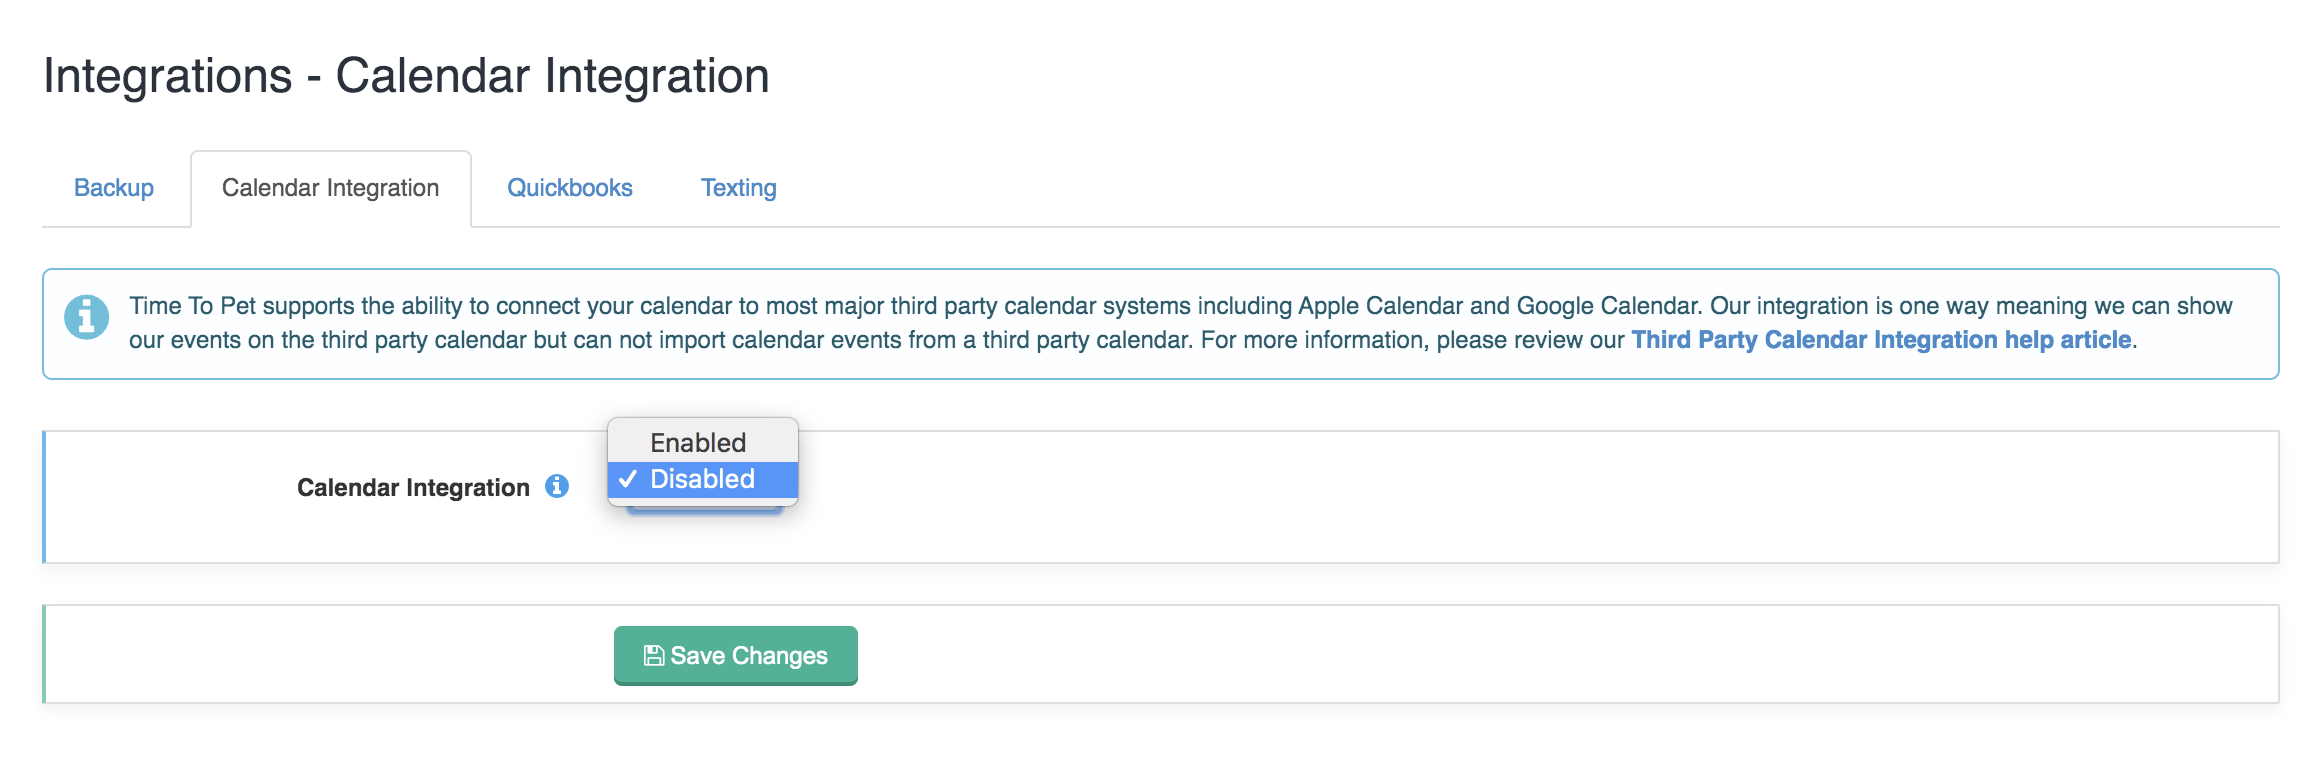 Integrations in settings under the Calendar Integration tab